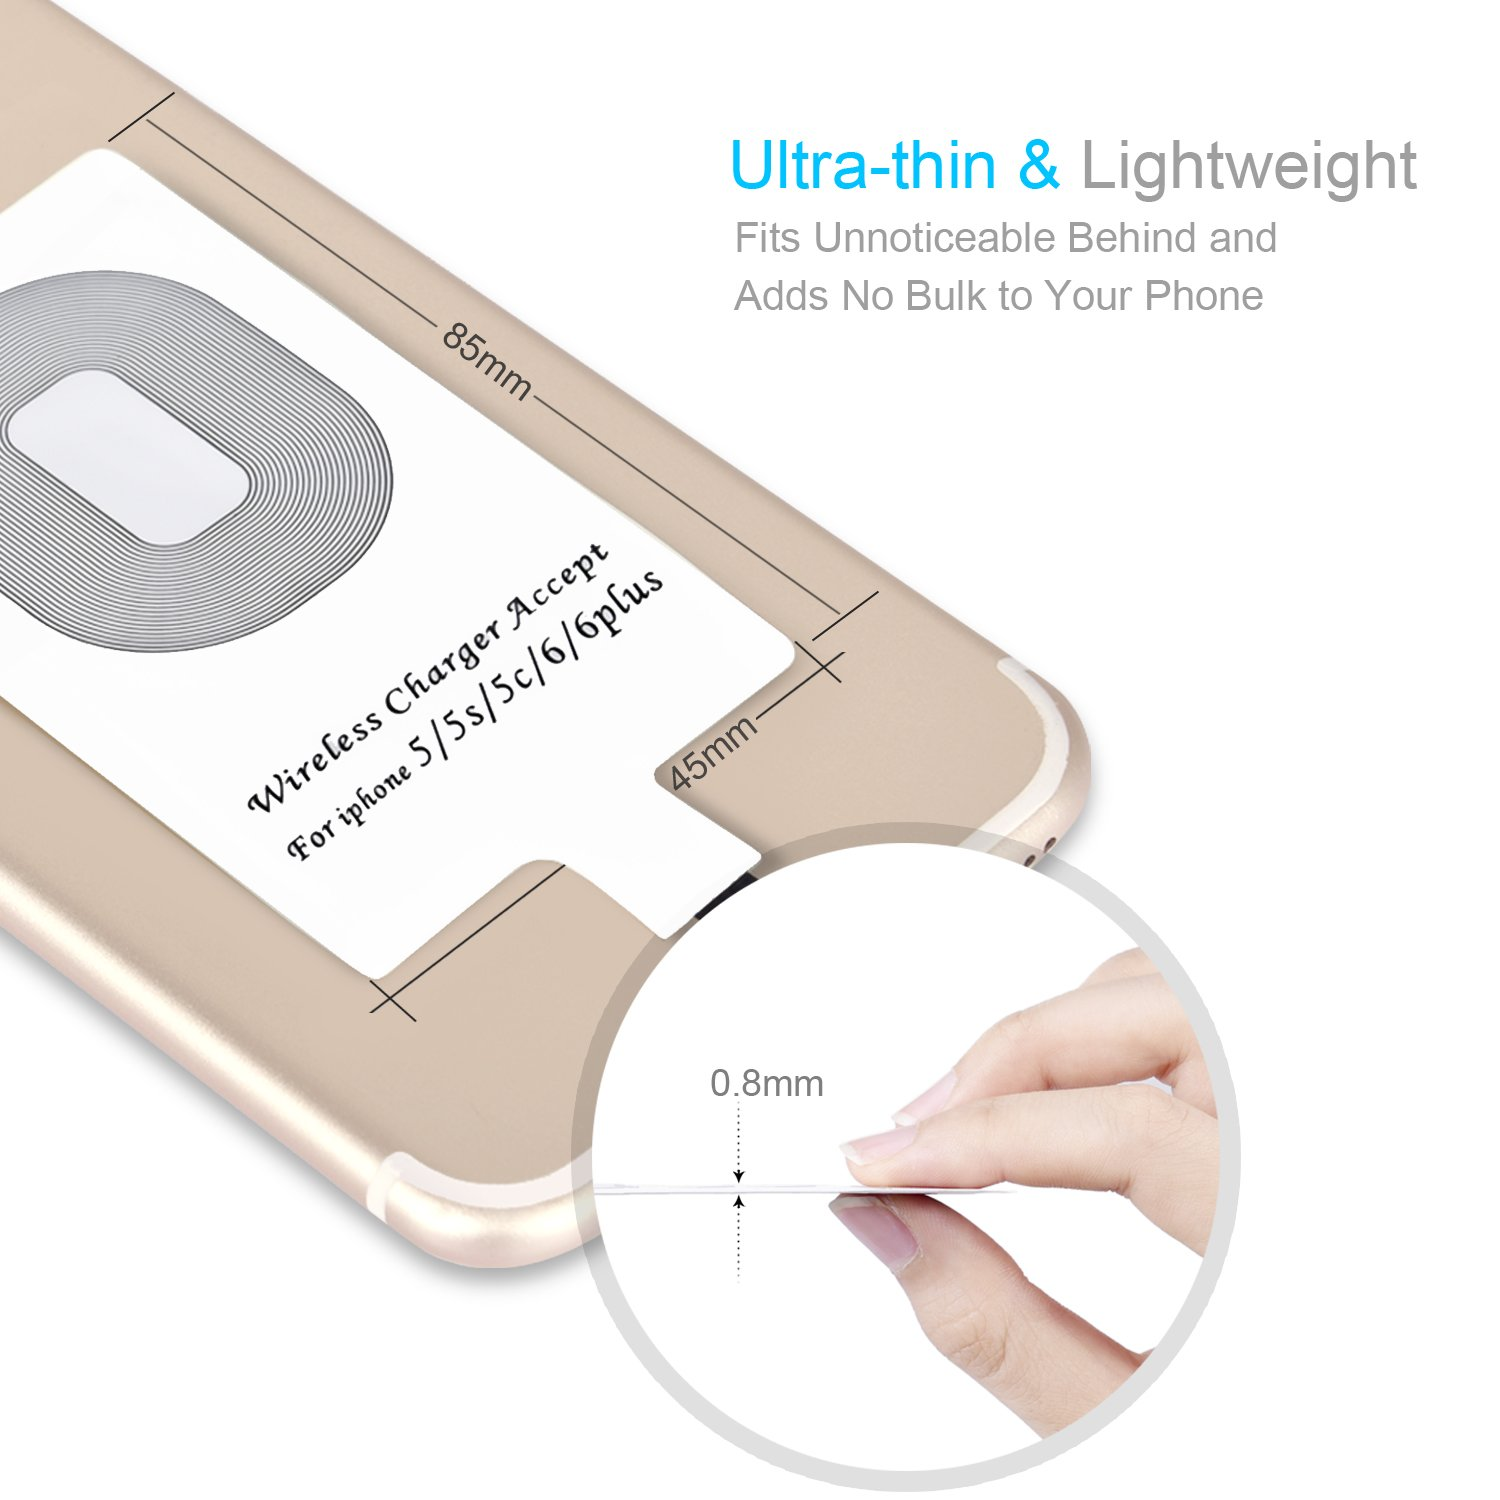 CHOETECH Ultra Thin Wireless Charging Qi Receiver for iPhone 7/7 Plus, iPhone 6/6 Plus, iPhone 5/5s/5c